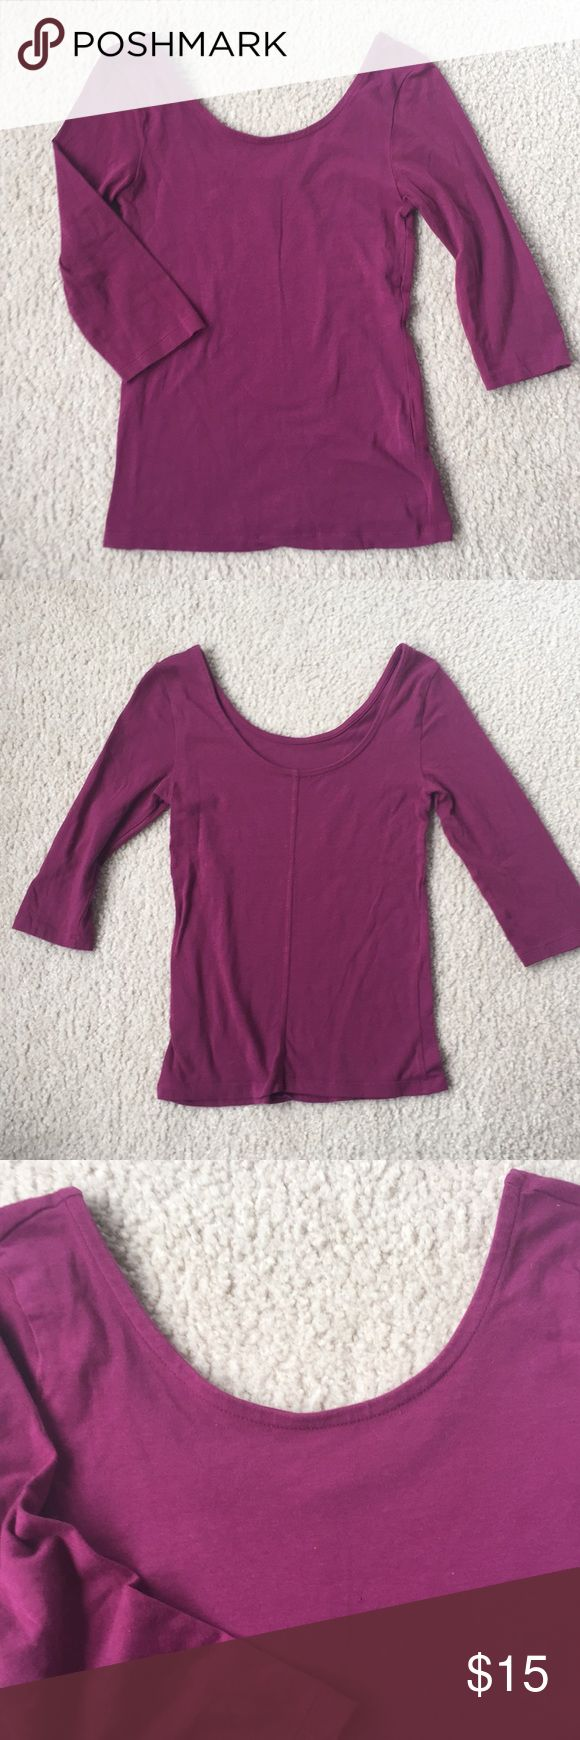 Scoop Neck & Scoop Back Ballet Neck Tee Bongo scoop neck and scoop back fitted ballet-style magenta/purple tee. 3/4 length sleeves. Very stretchy. Only flaw is one tiny hole on the front (see last photo). Would be adorable under a flouncy skirt or tucked into some shorts! BONGO Tops Tees - Long Sleeve